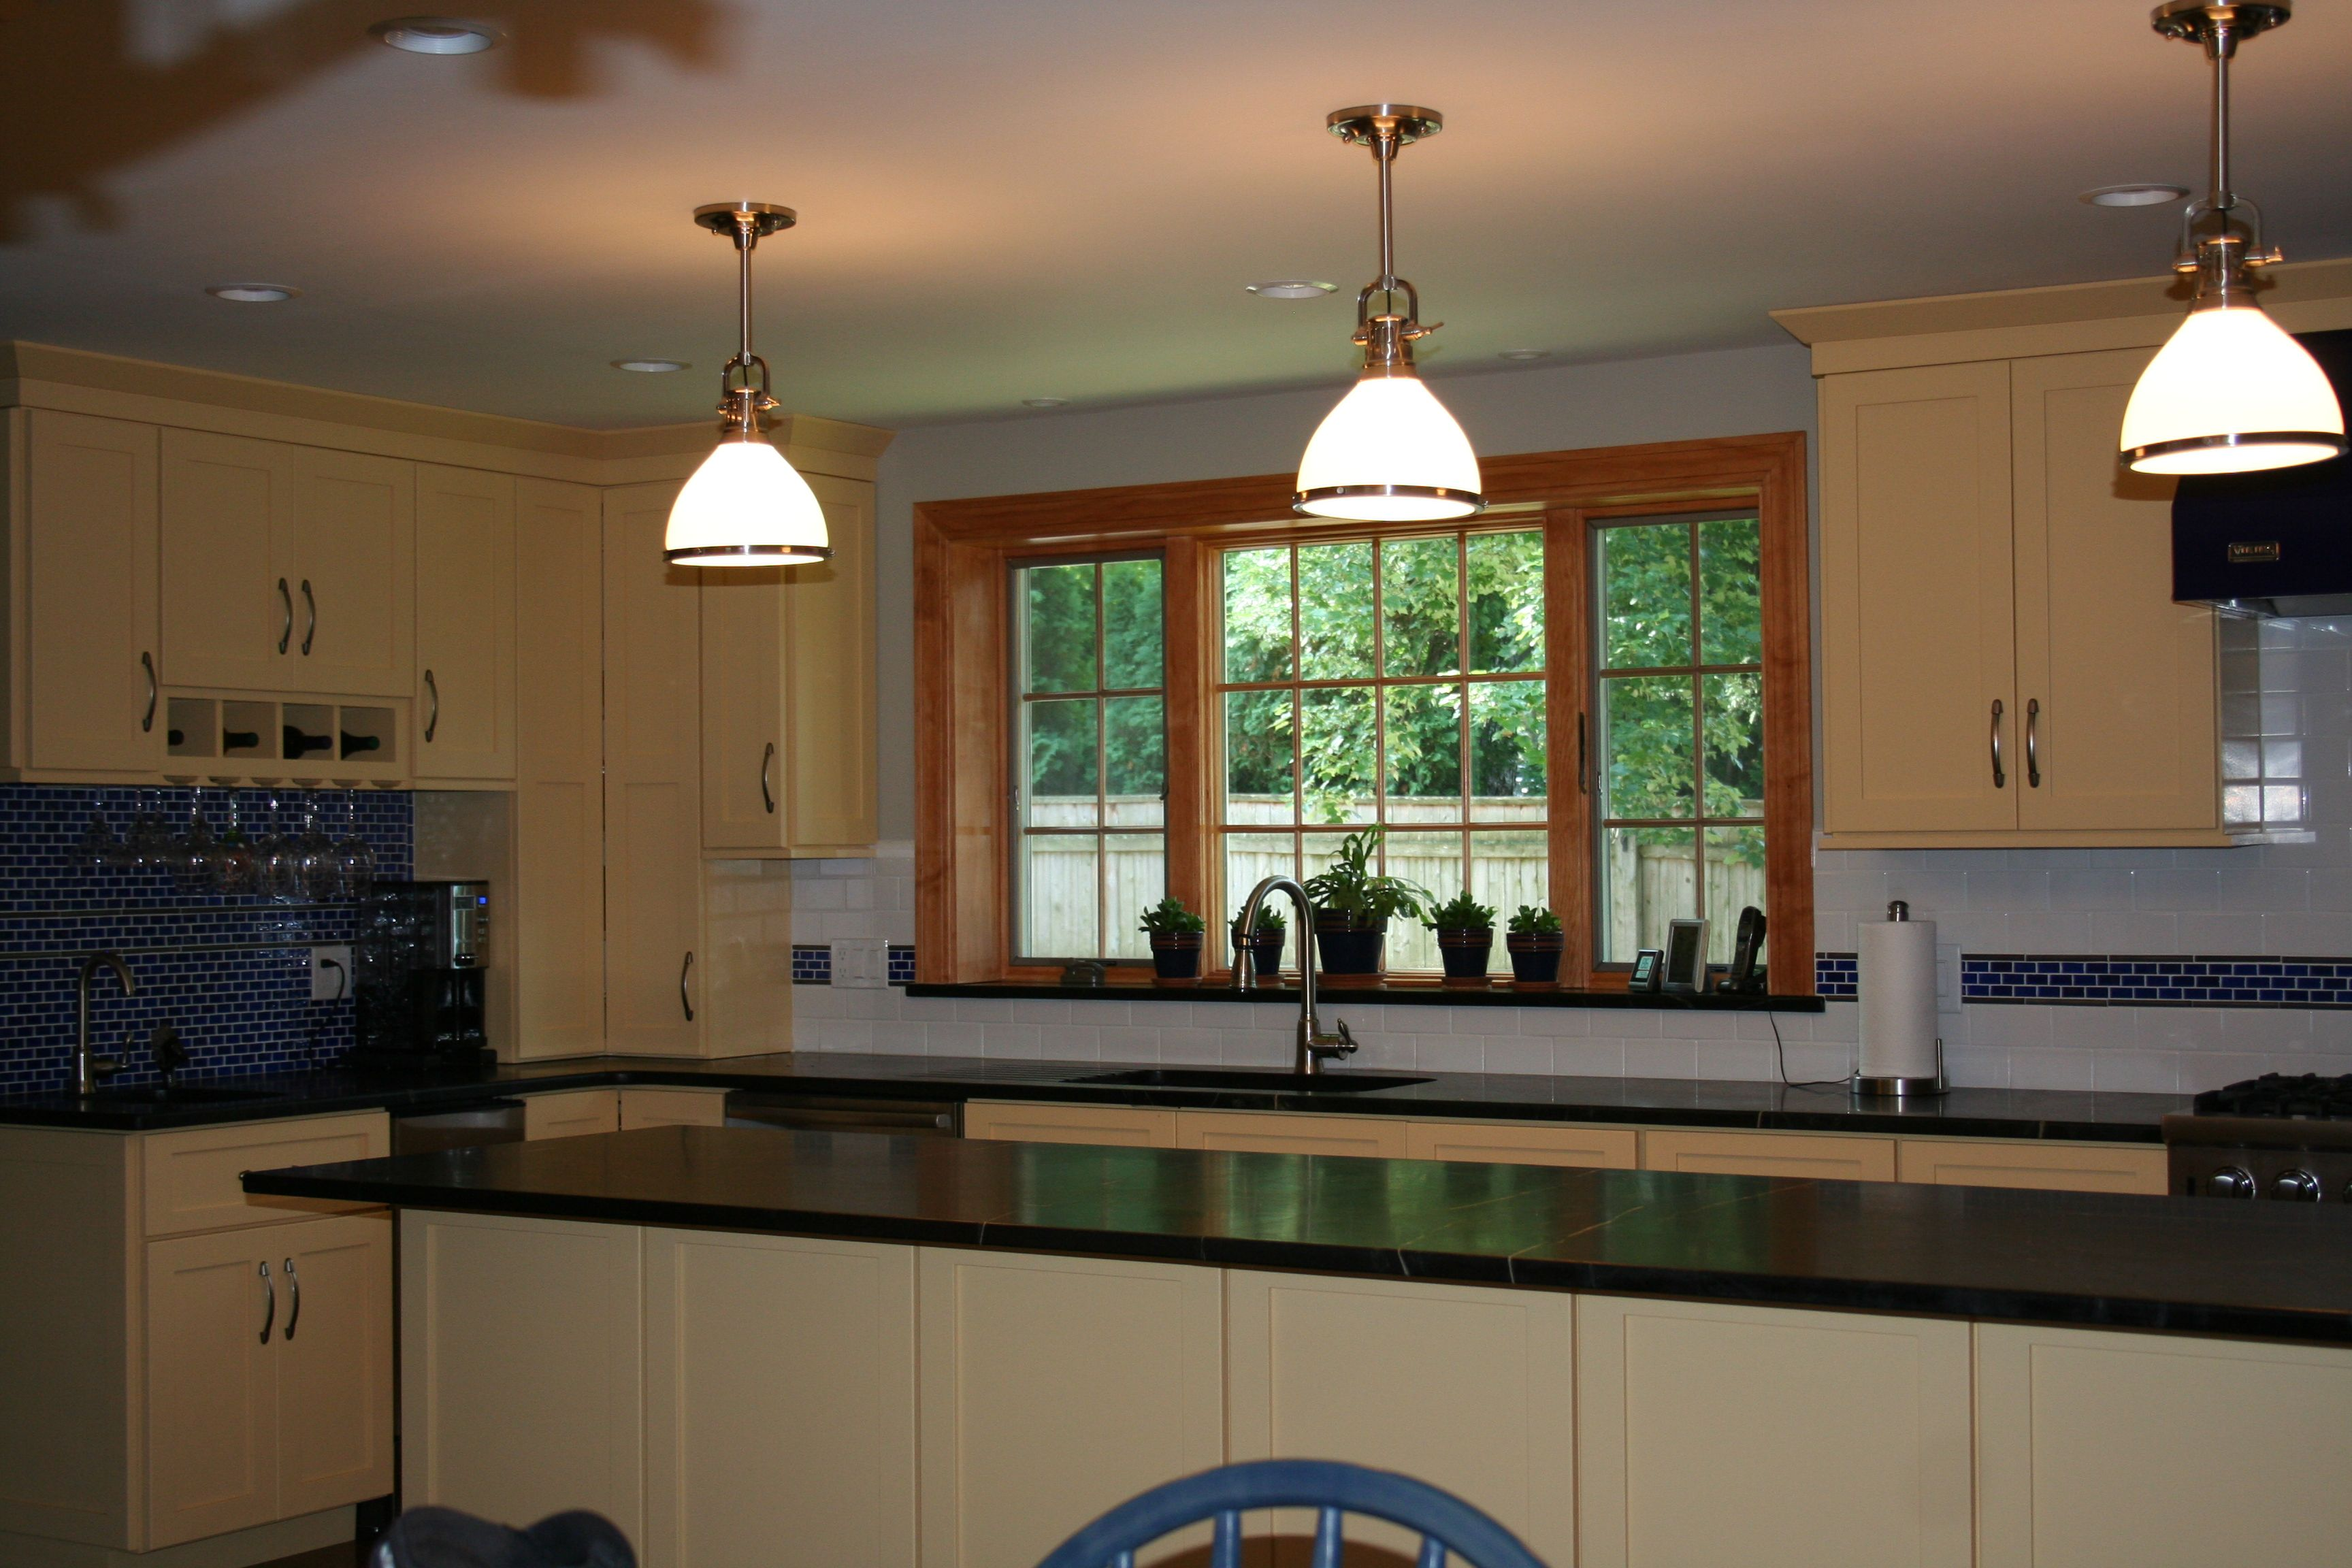 Lovely open kitchen with pendant lighting accessorize this